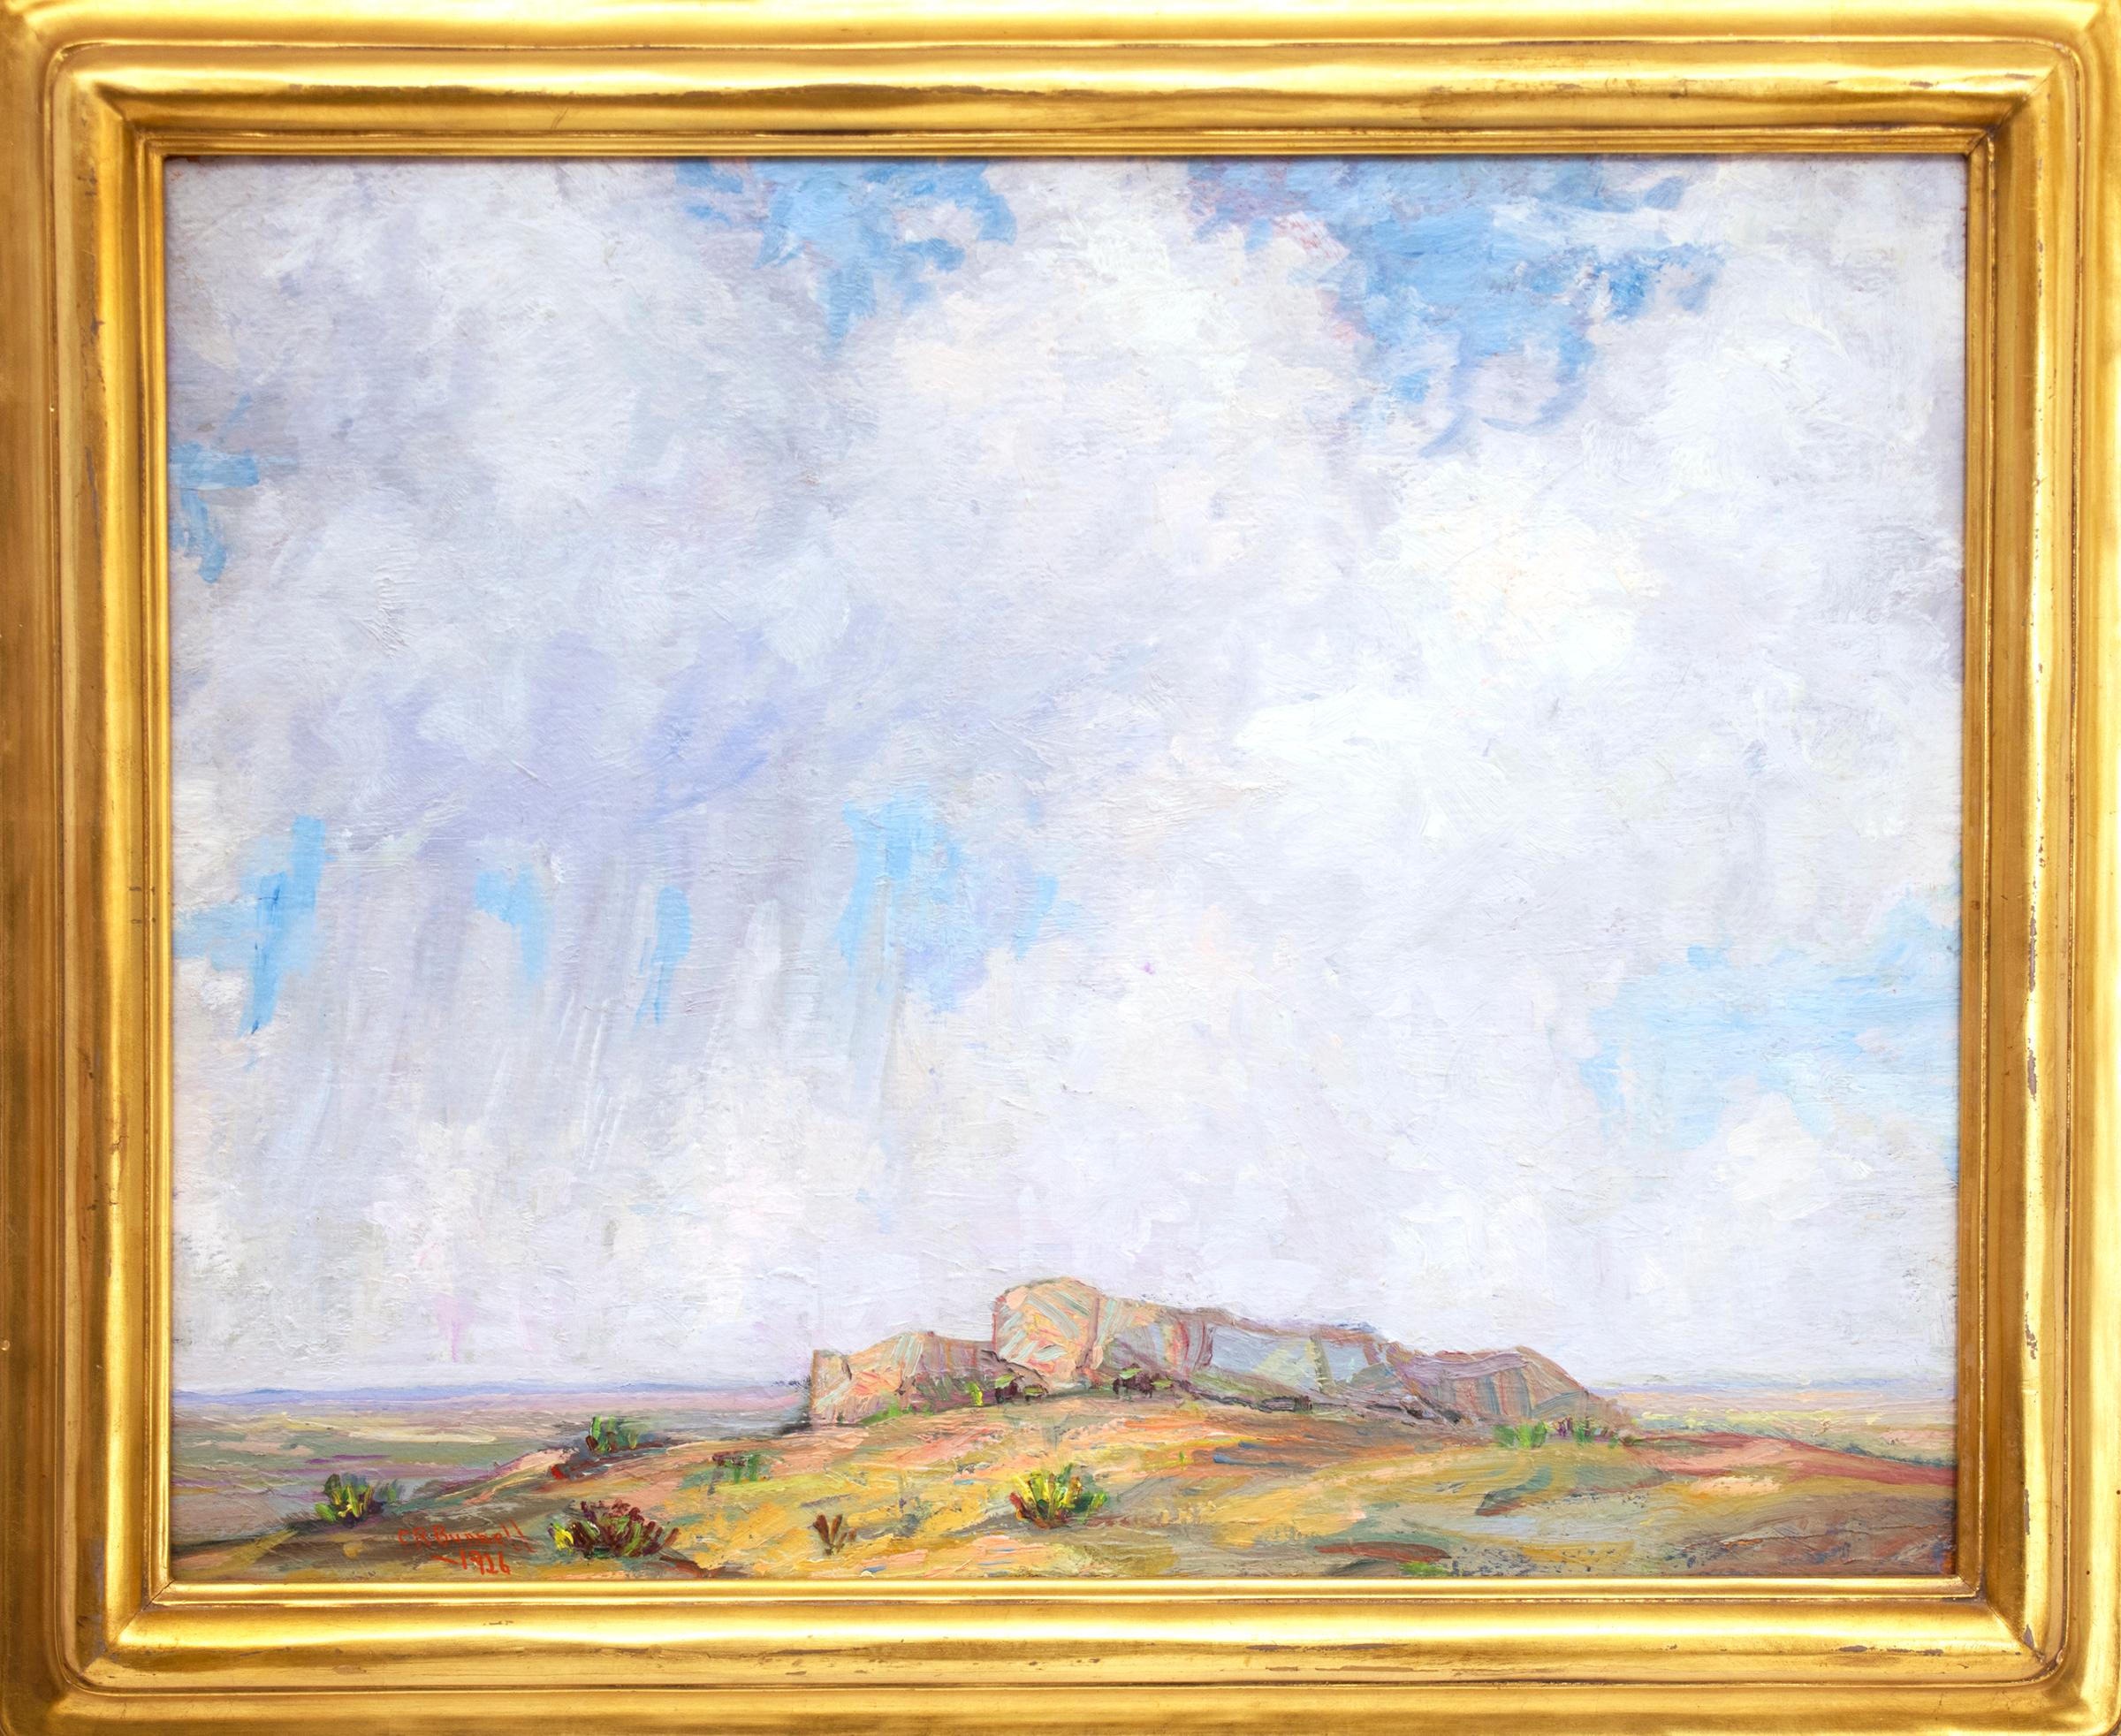 Untitled (Colorado Landscape with Buttes, Prairie and Big Blue Sky with Clouds)